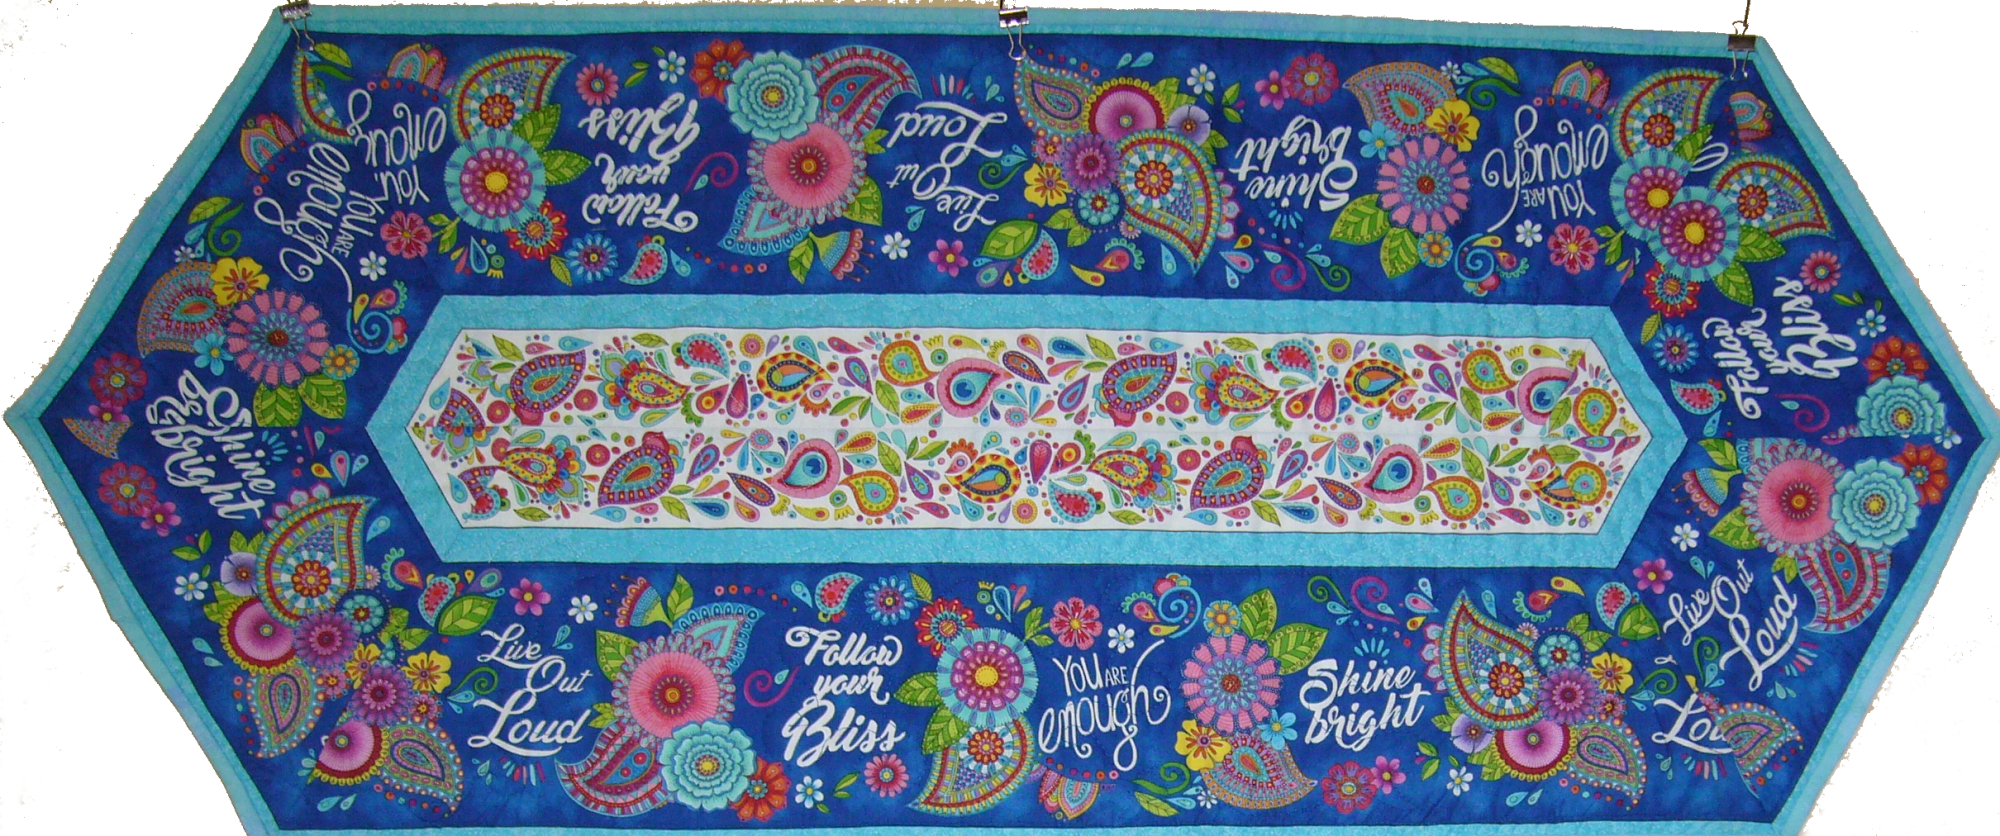 Live out Loud Table Runner